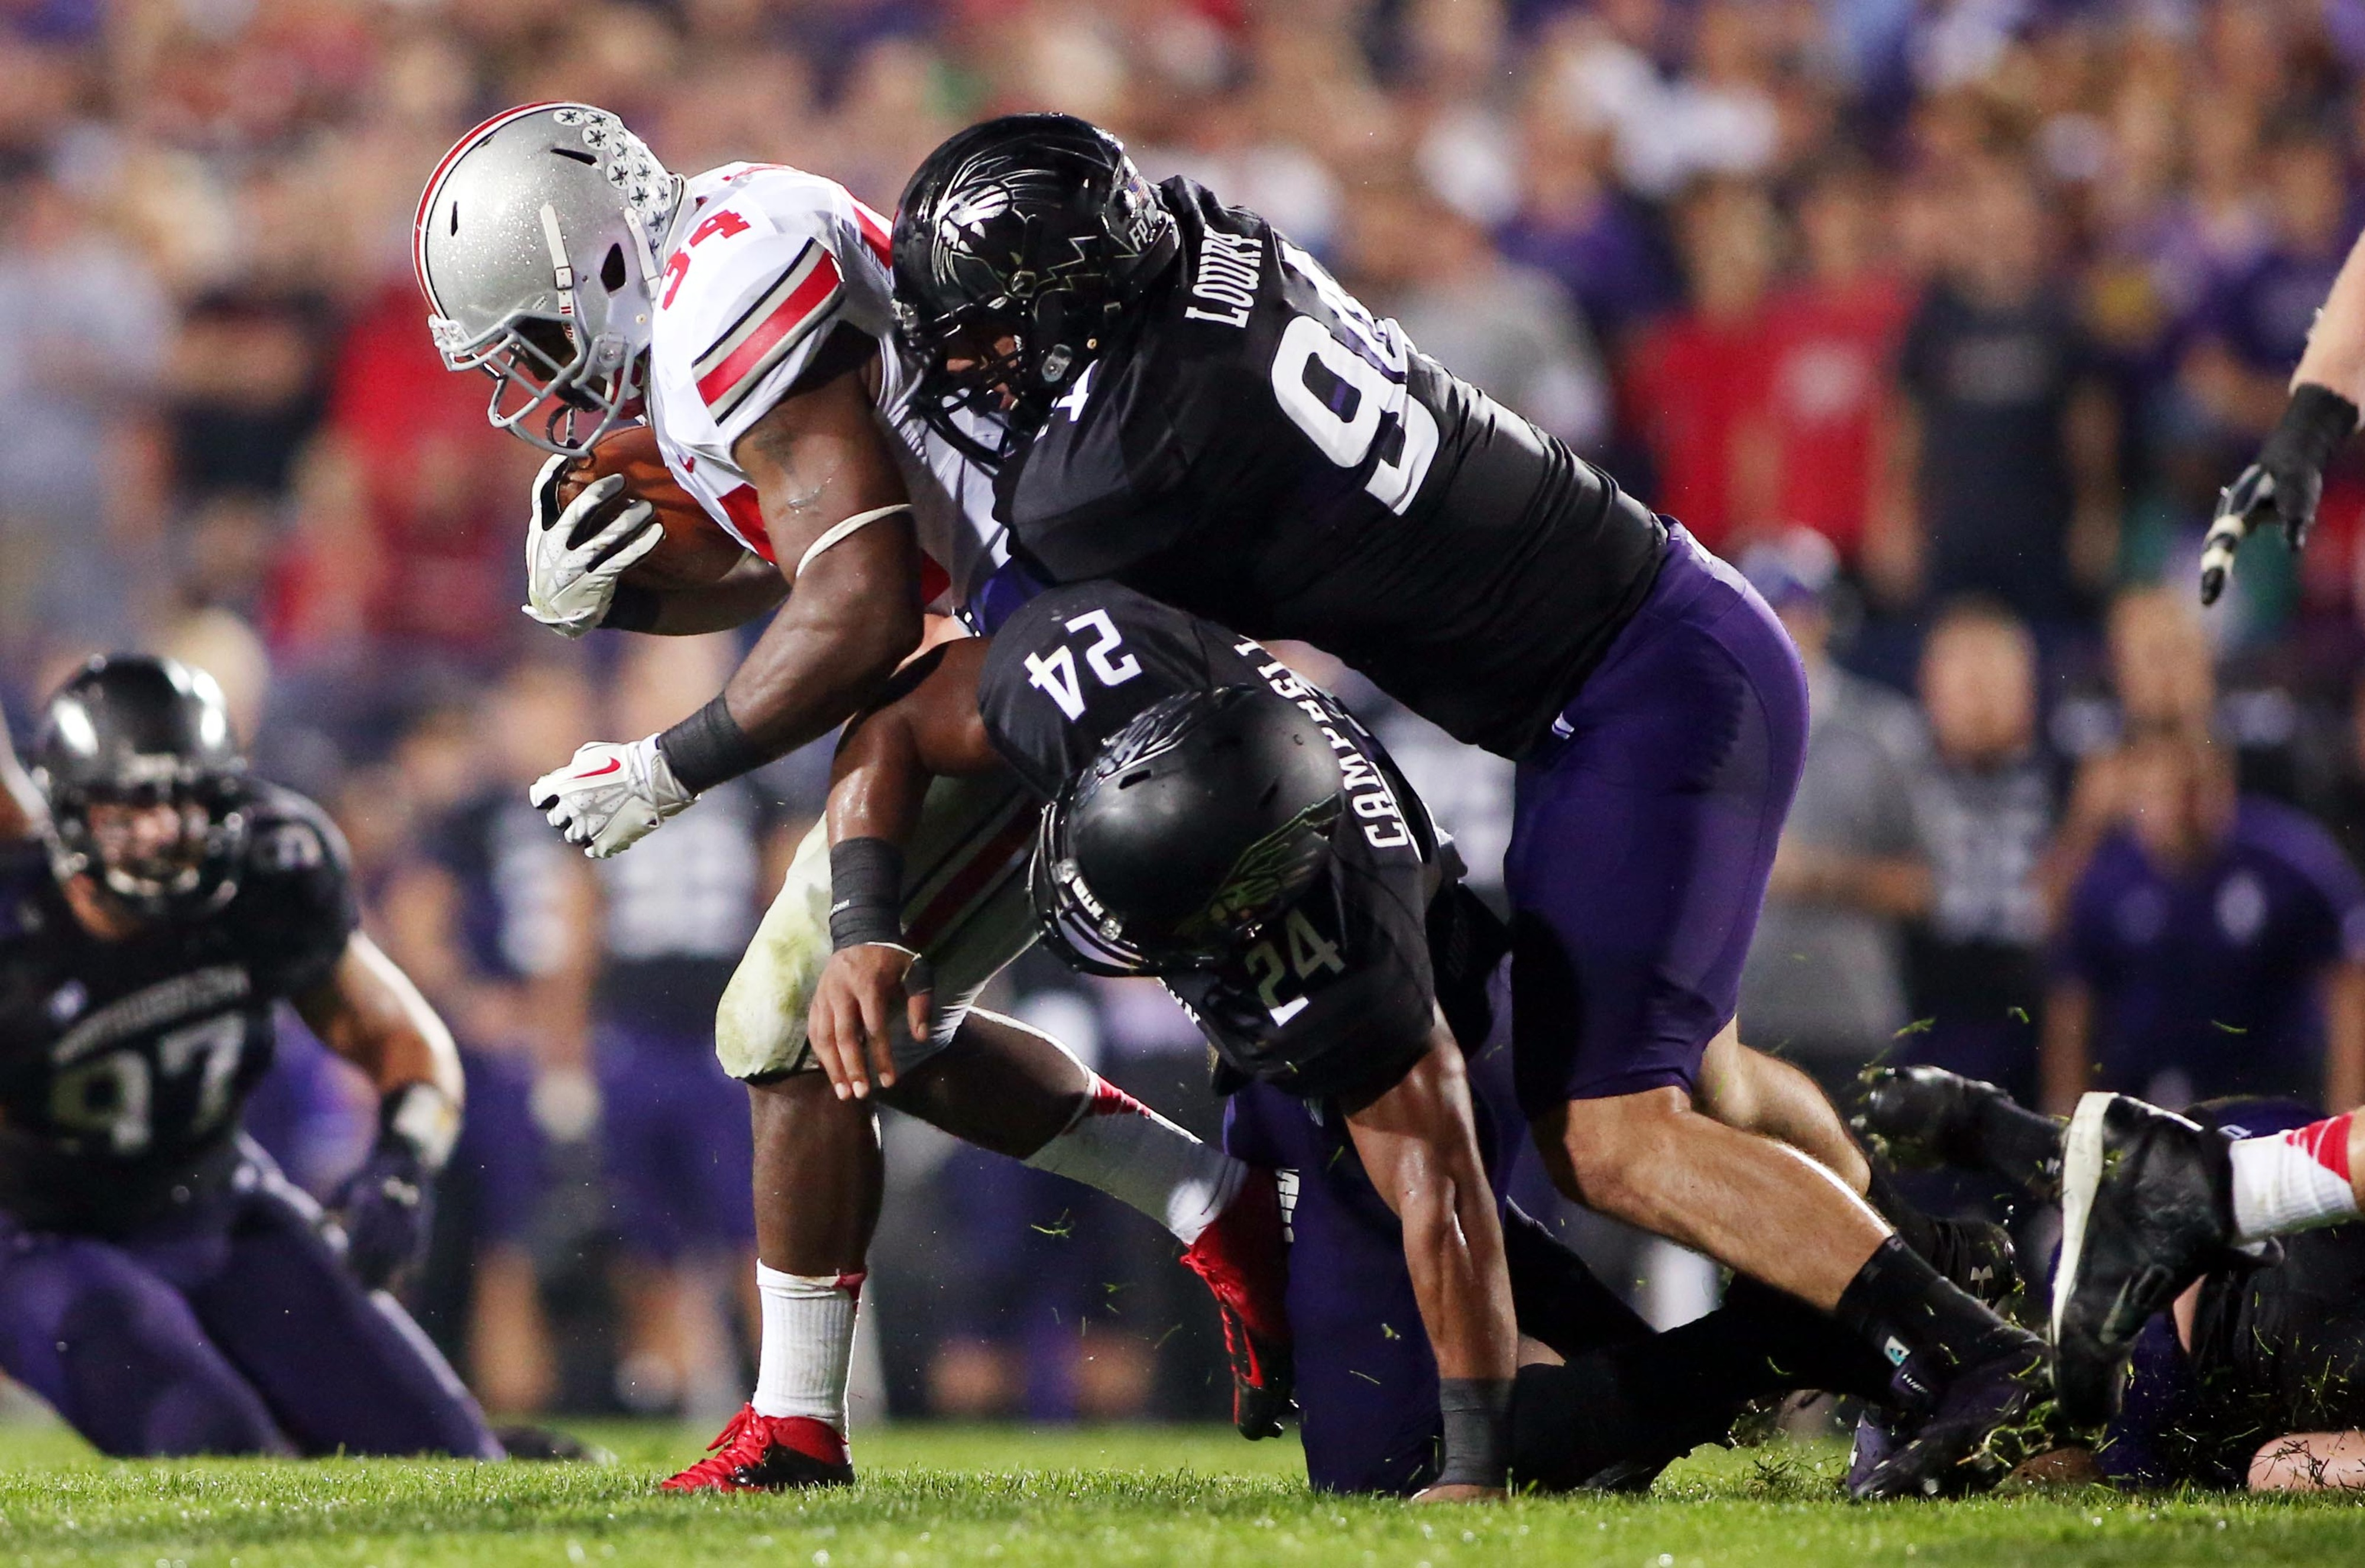 Ohio State vs. Northwestern final score: Buckeyes win, 40-30, after back-and-forth 4th quarter